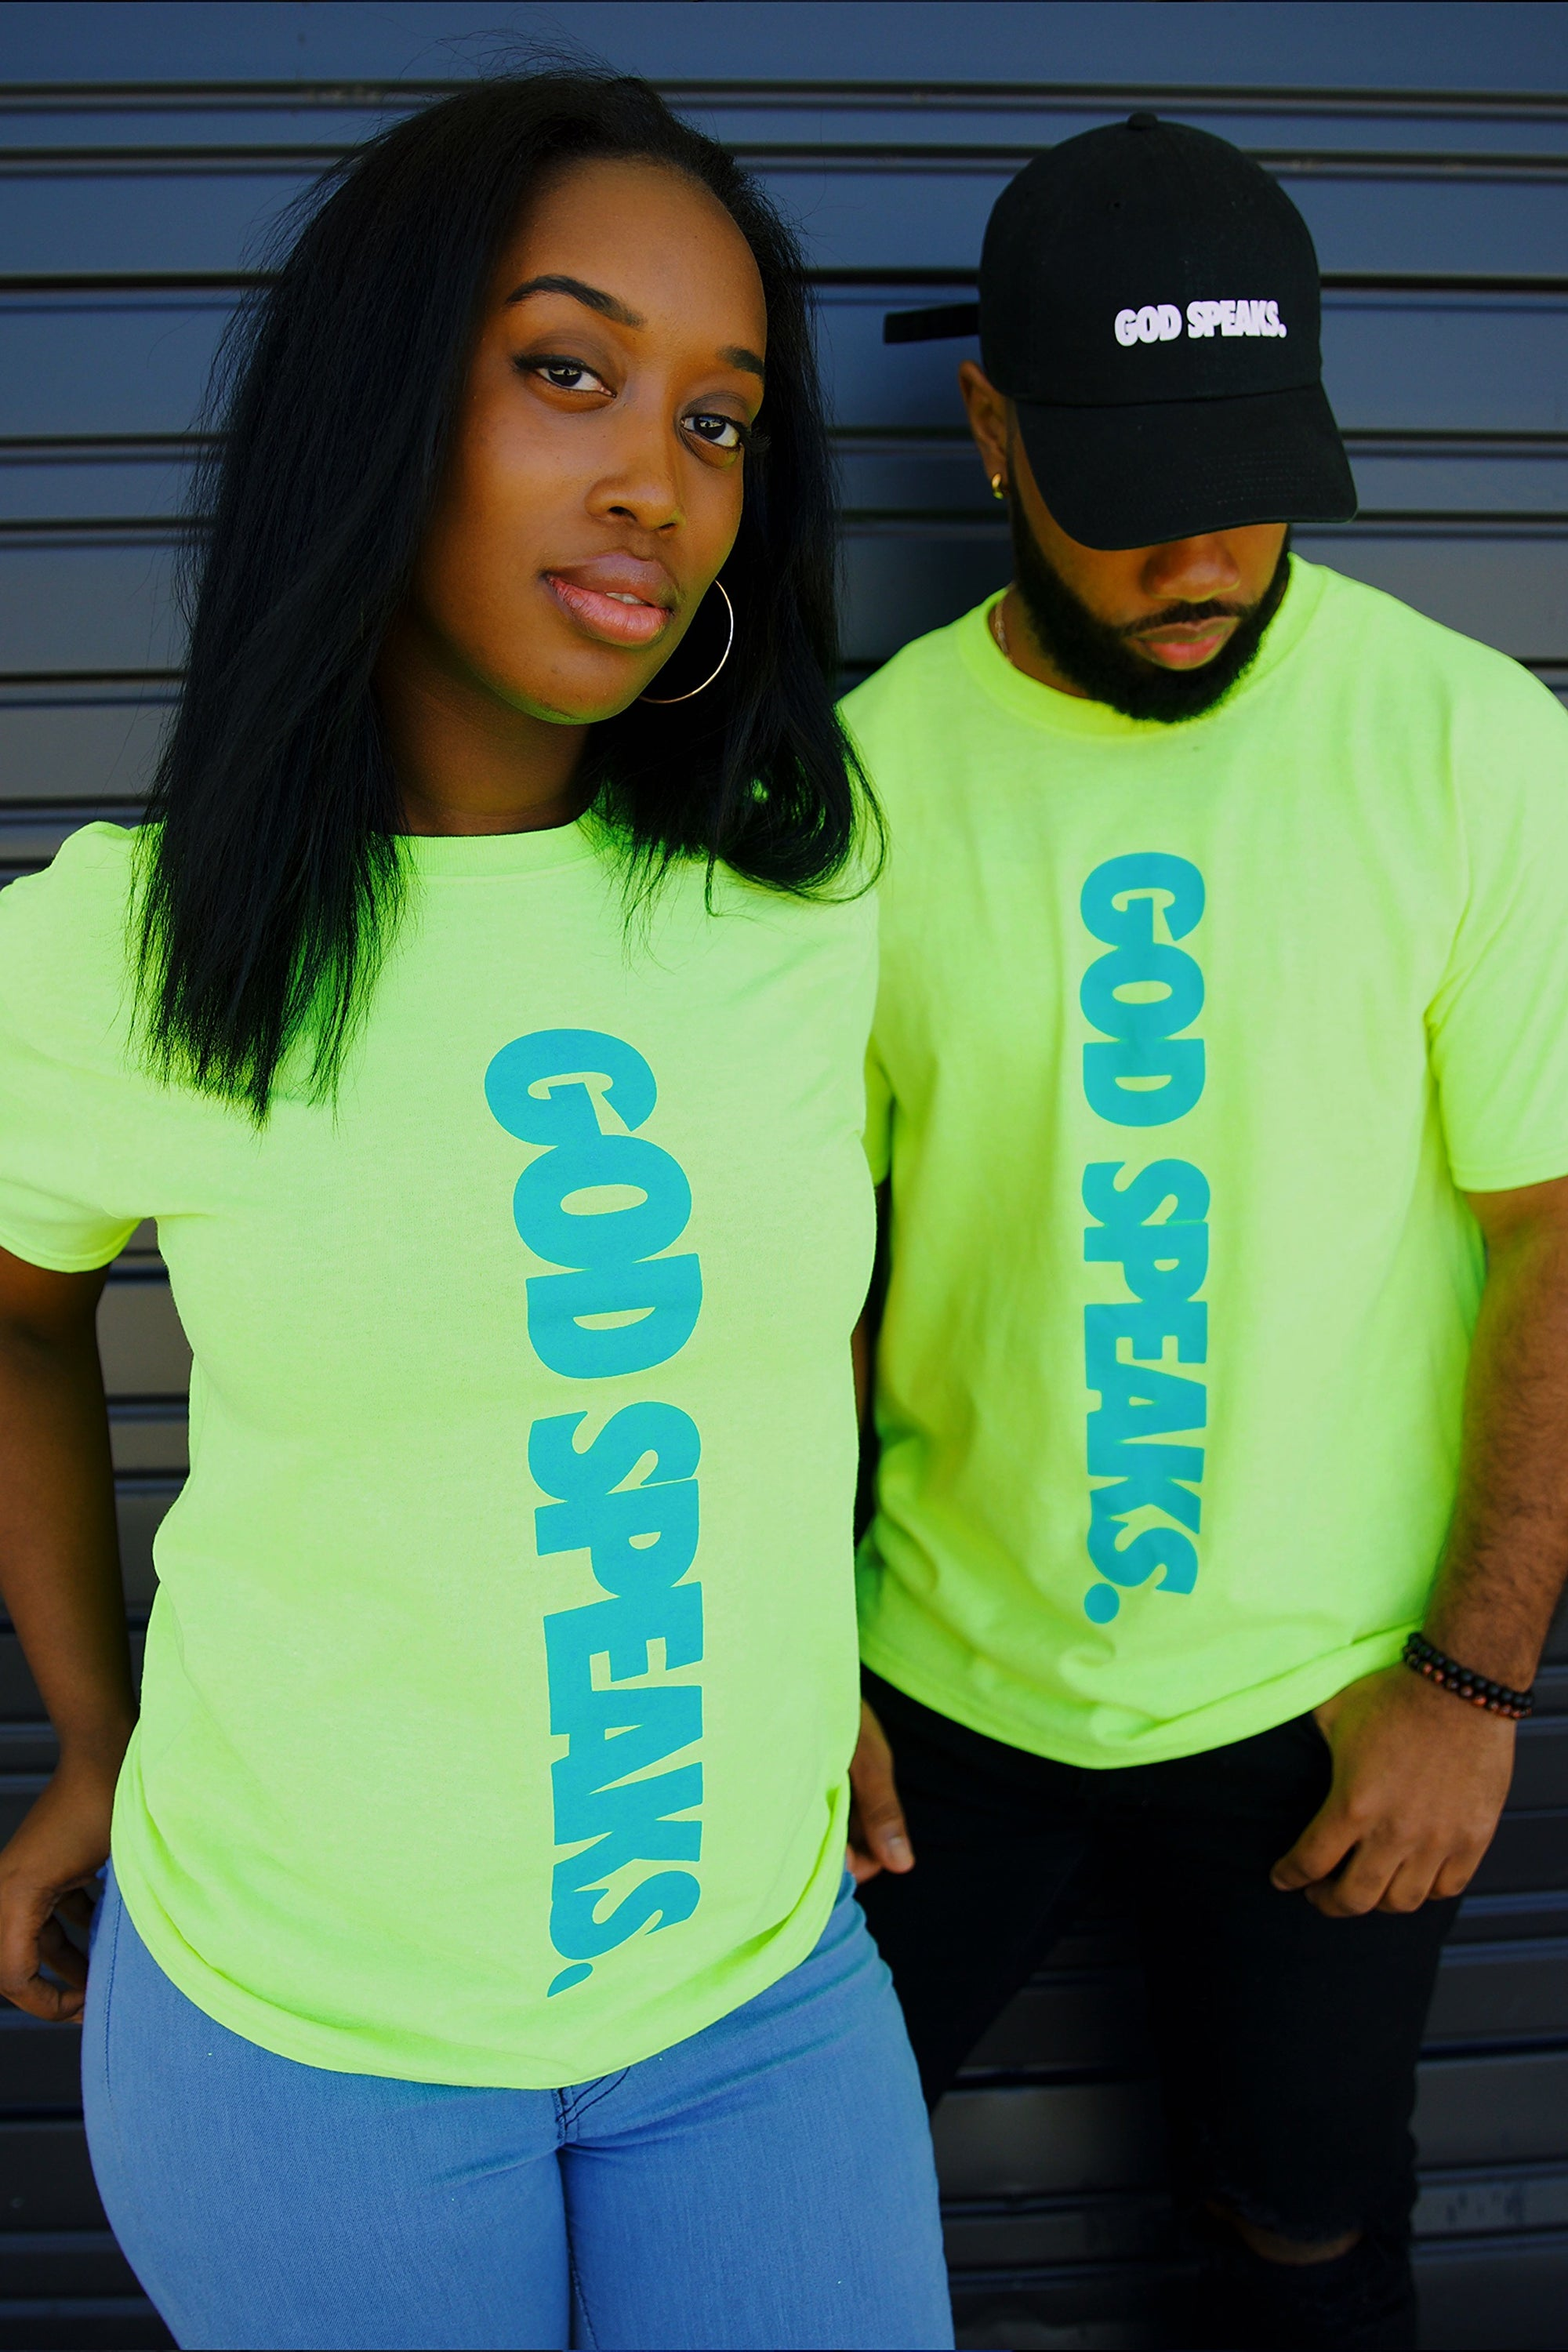 GOD SPEAKS TEE (NEON GREEN/BLUE)